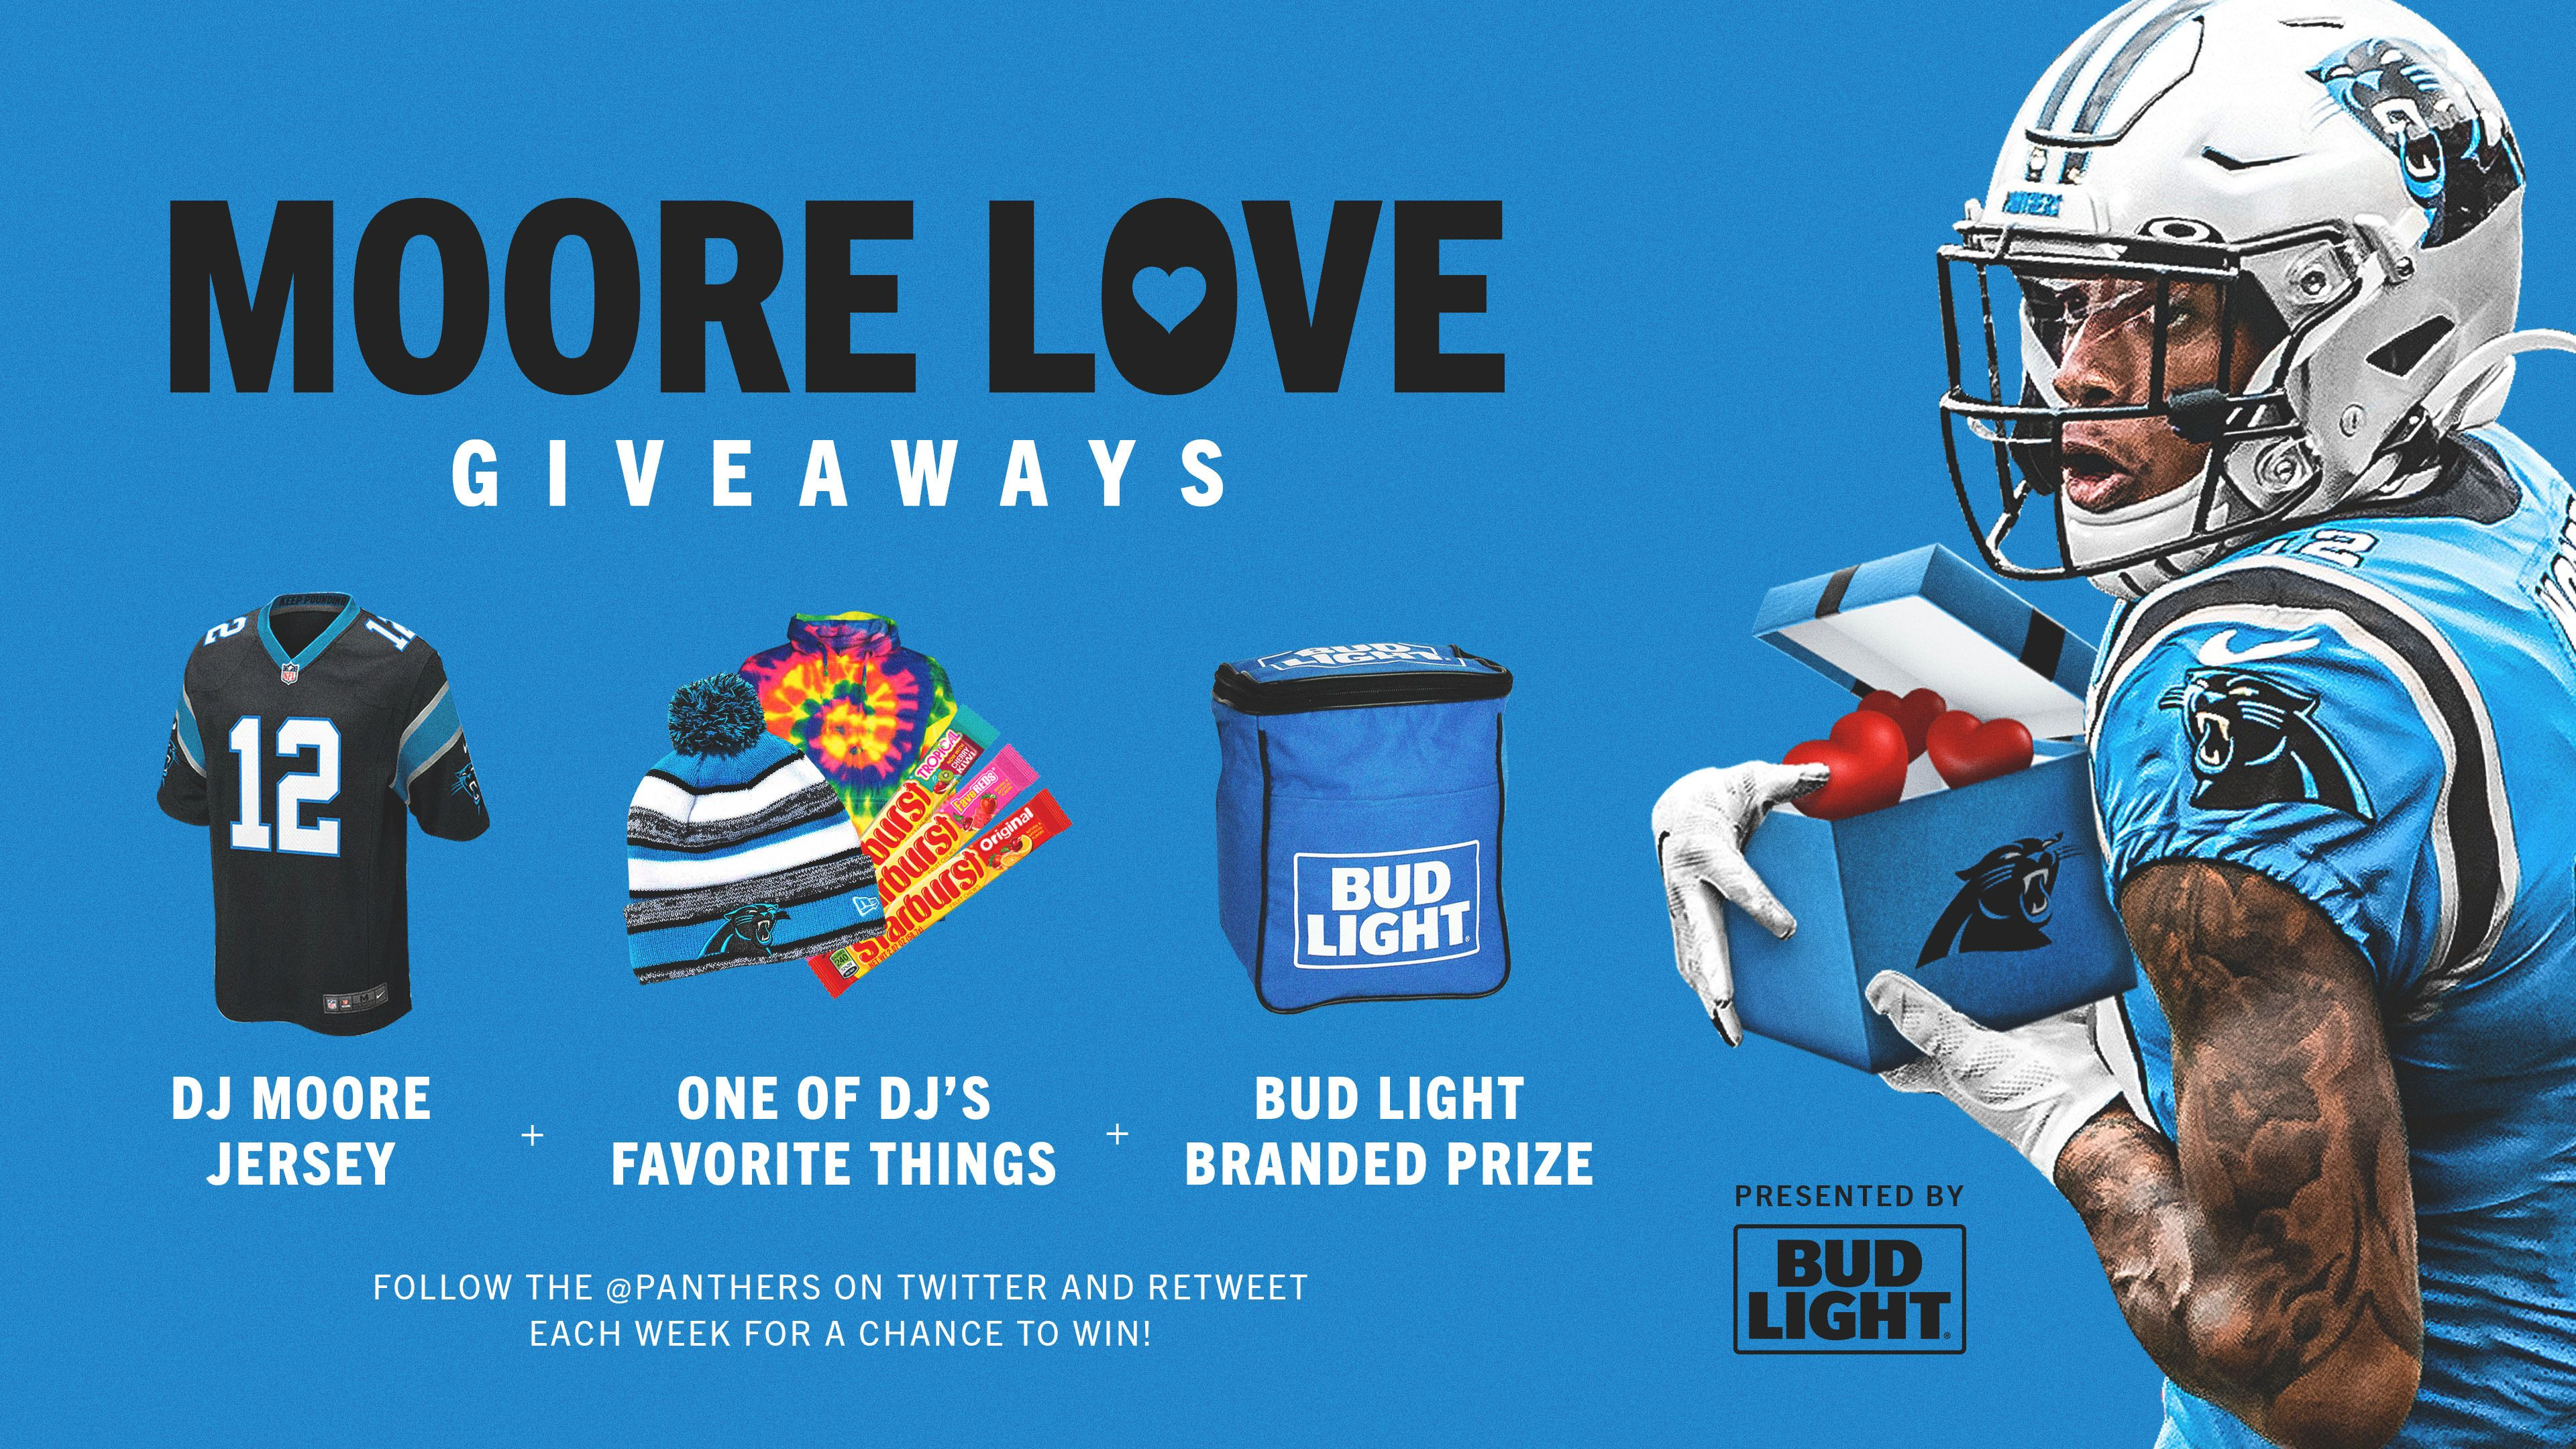 Moore Love Giveaways